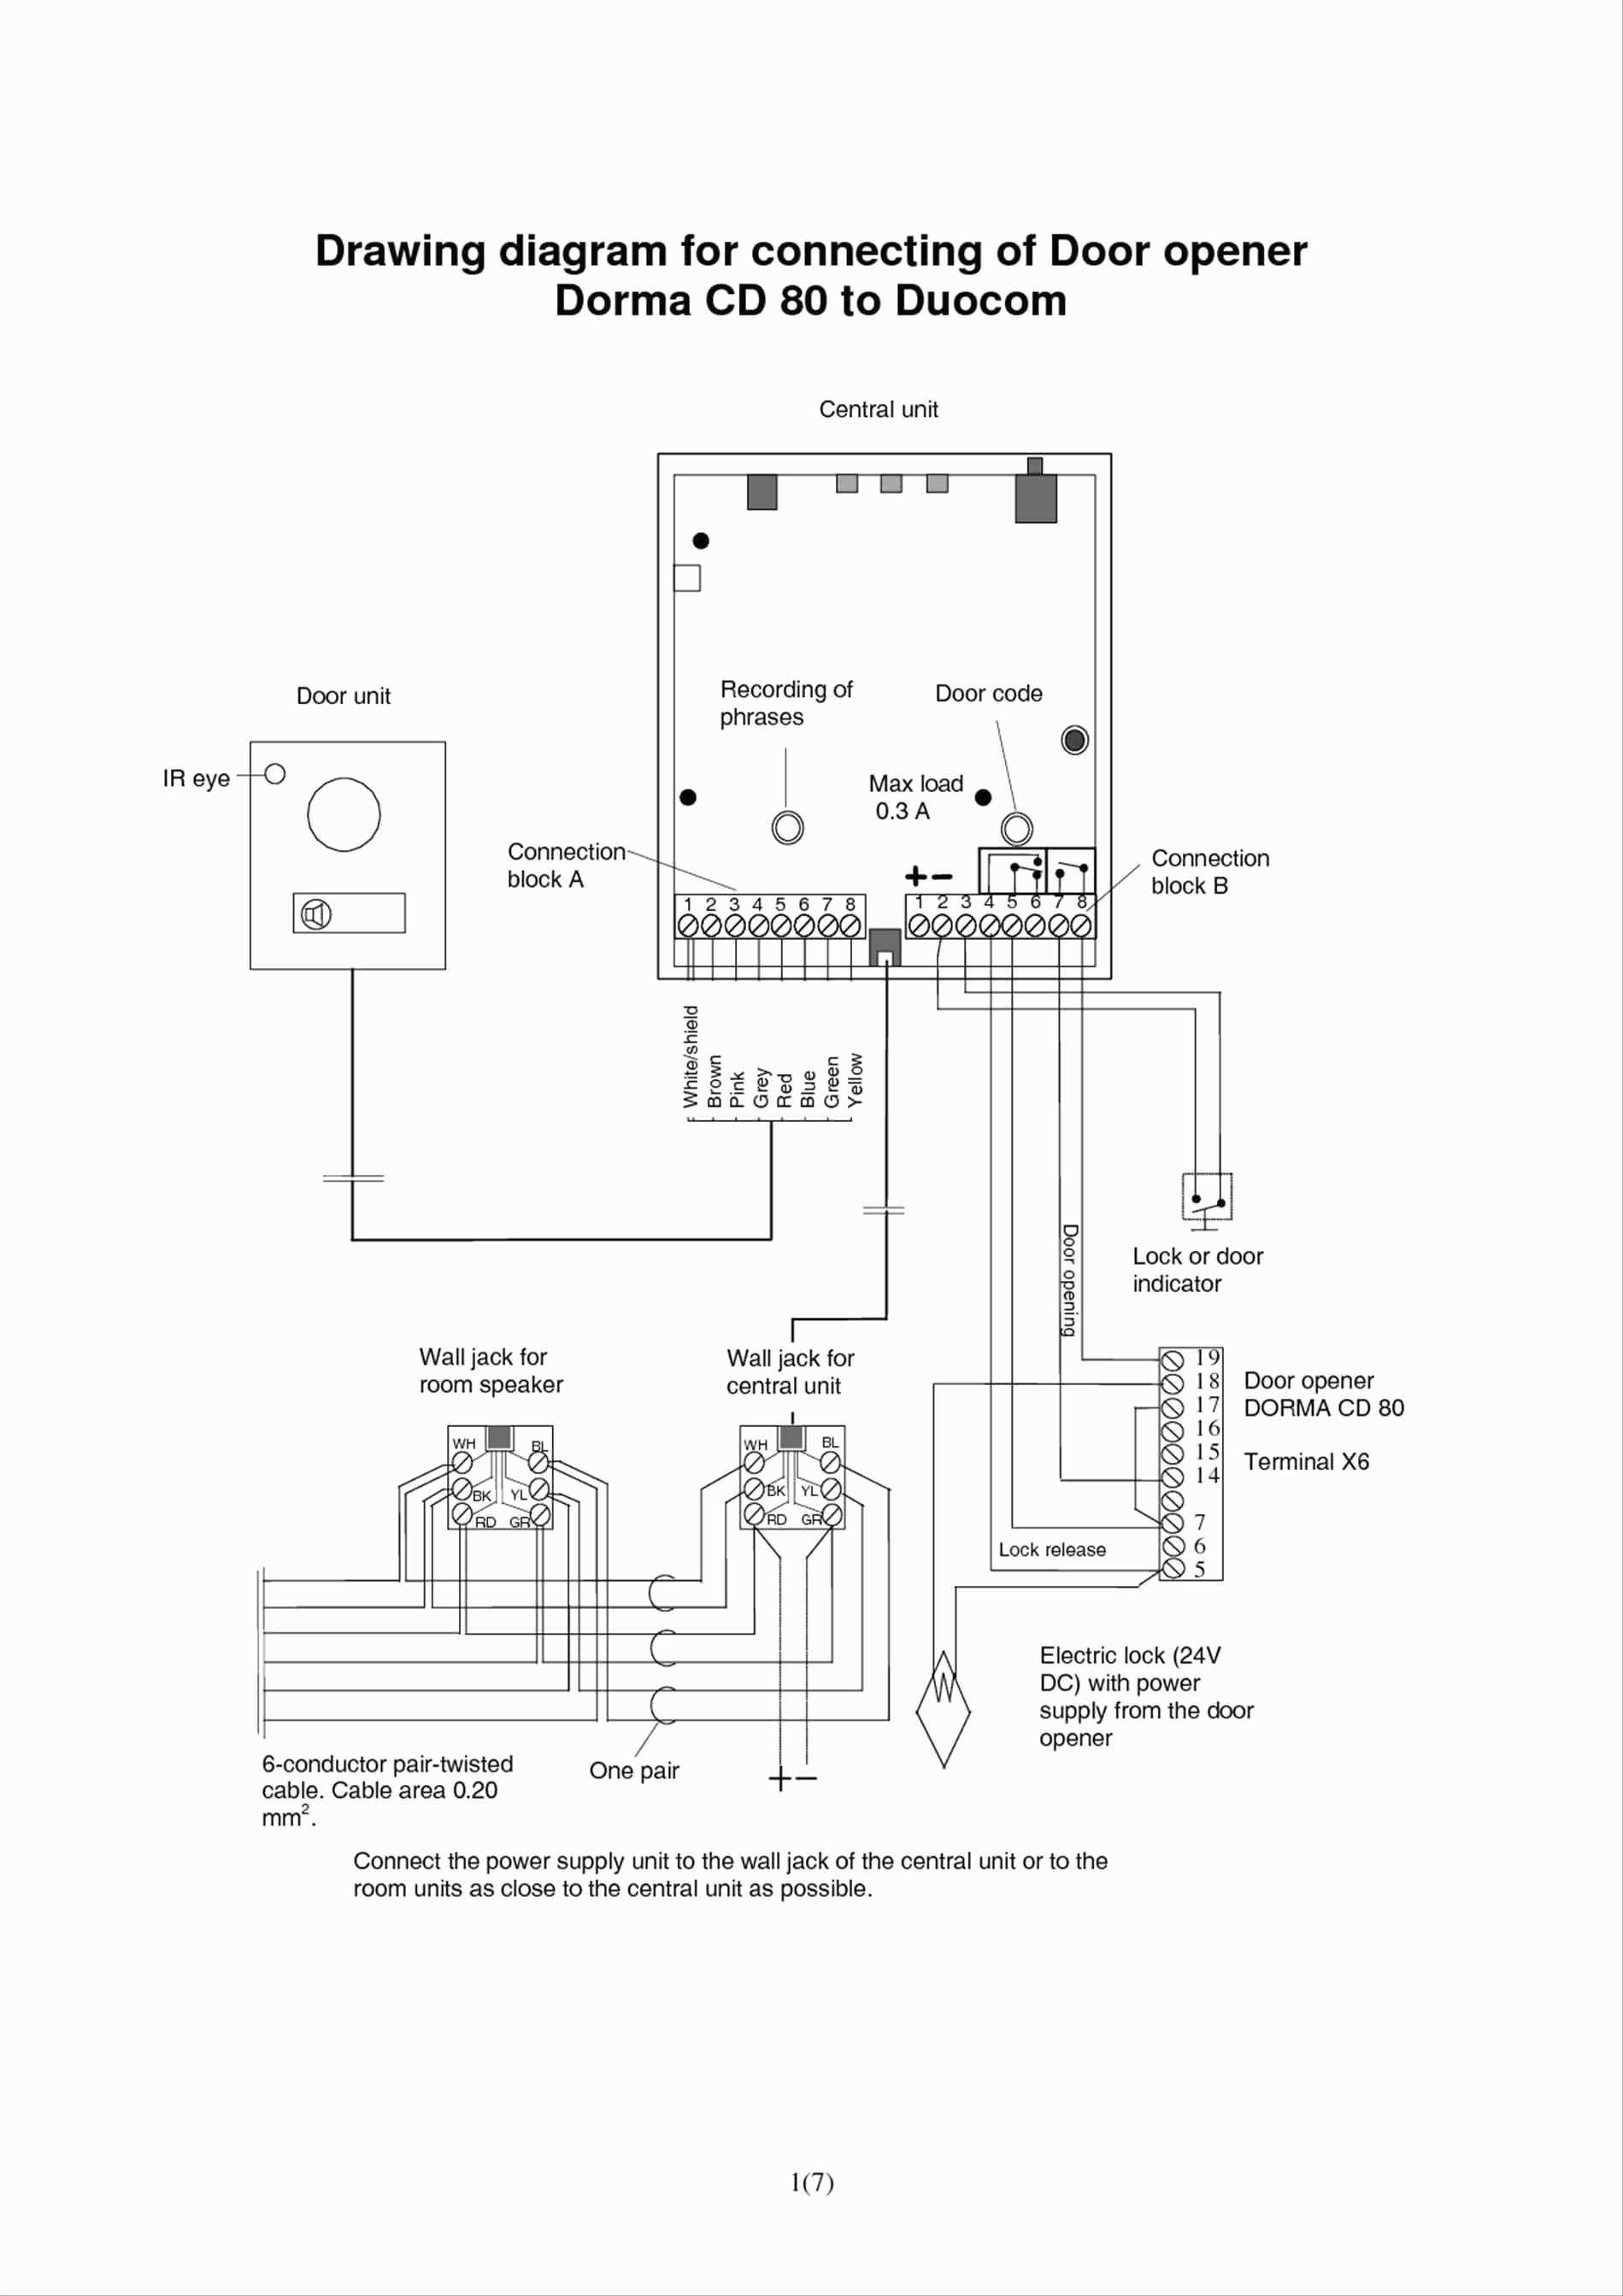 Plan S Wiring Diagram Moreover Central Heating Wiring Diagram